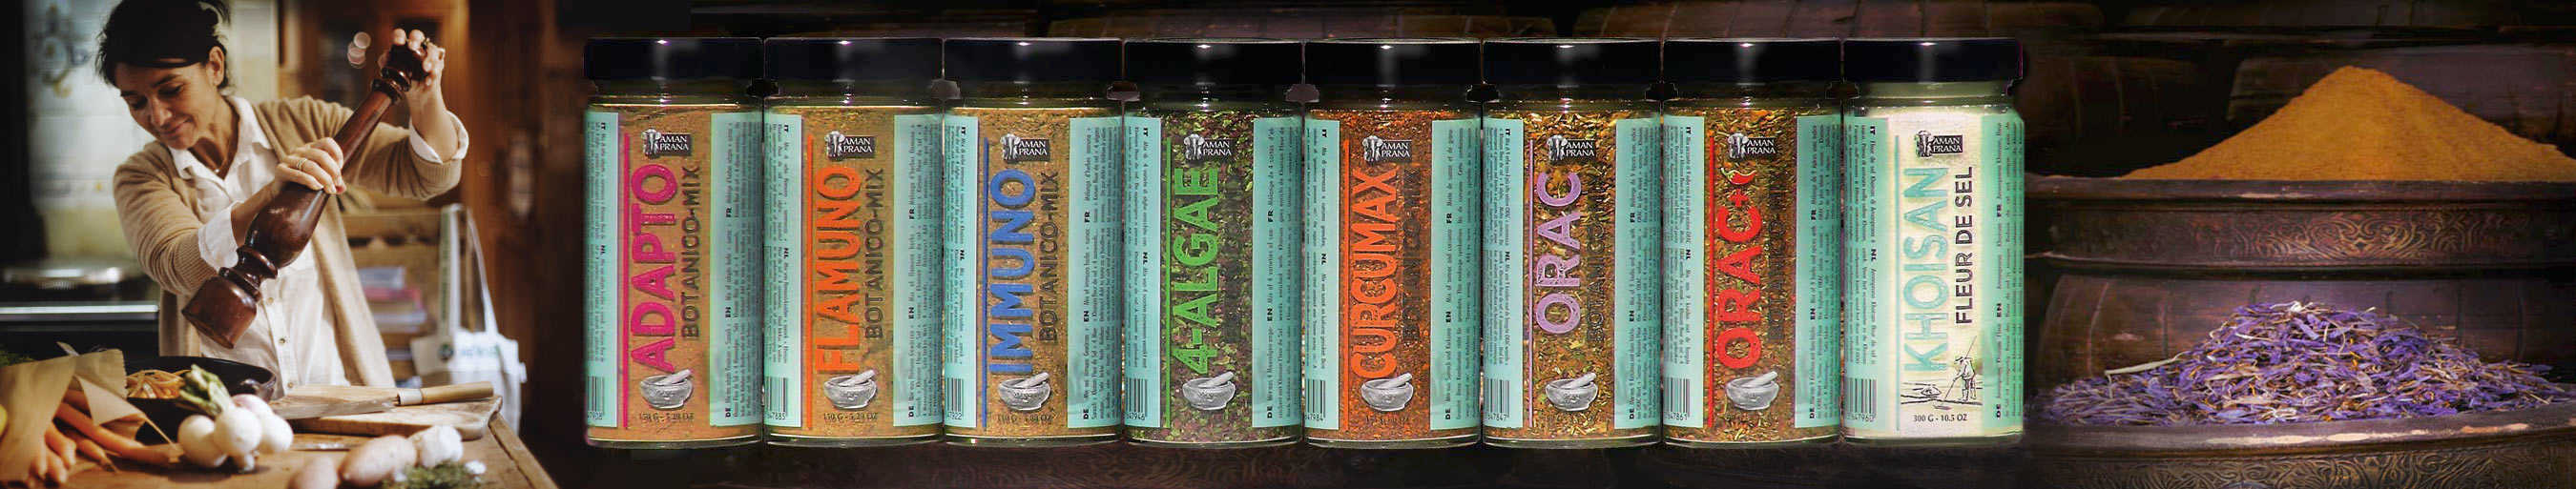 Collection of spice mixes in glass jars of Amanprana Botanico spice mixes